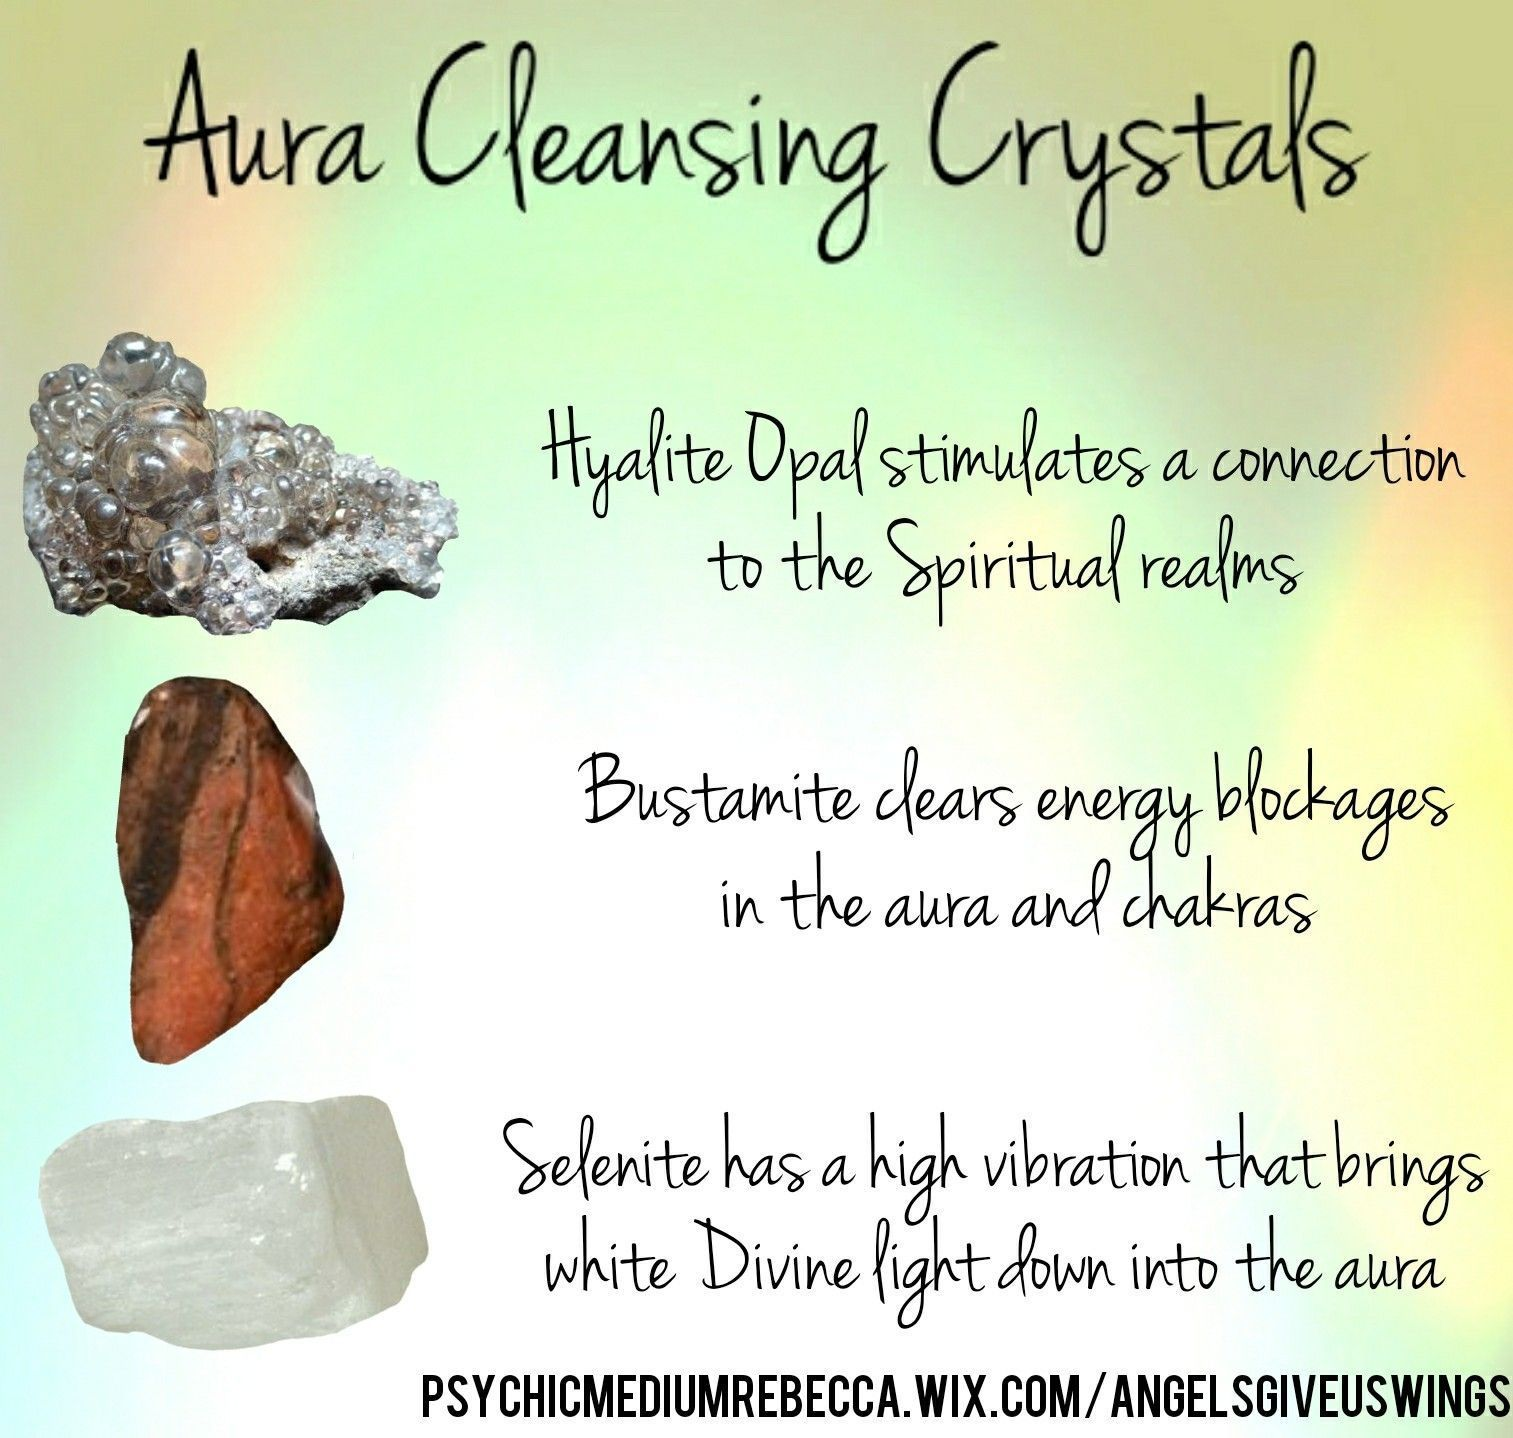 Crystals for aura cleansing cleansing crystals crystal